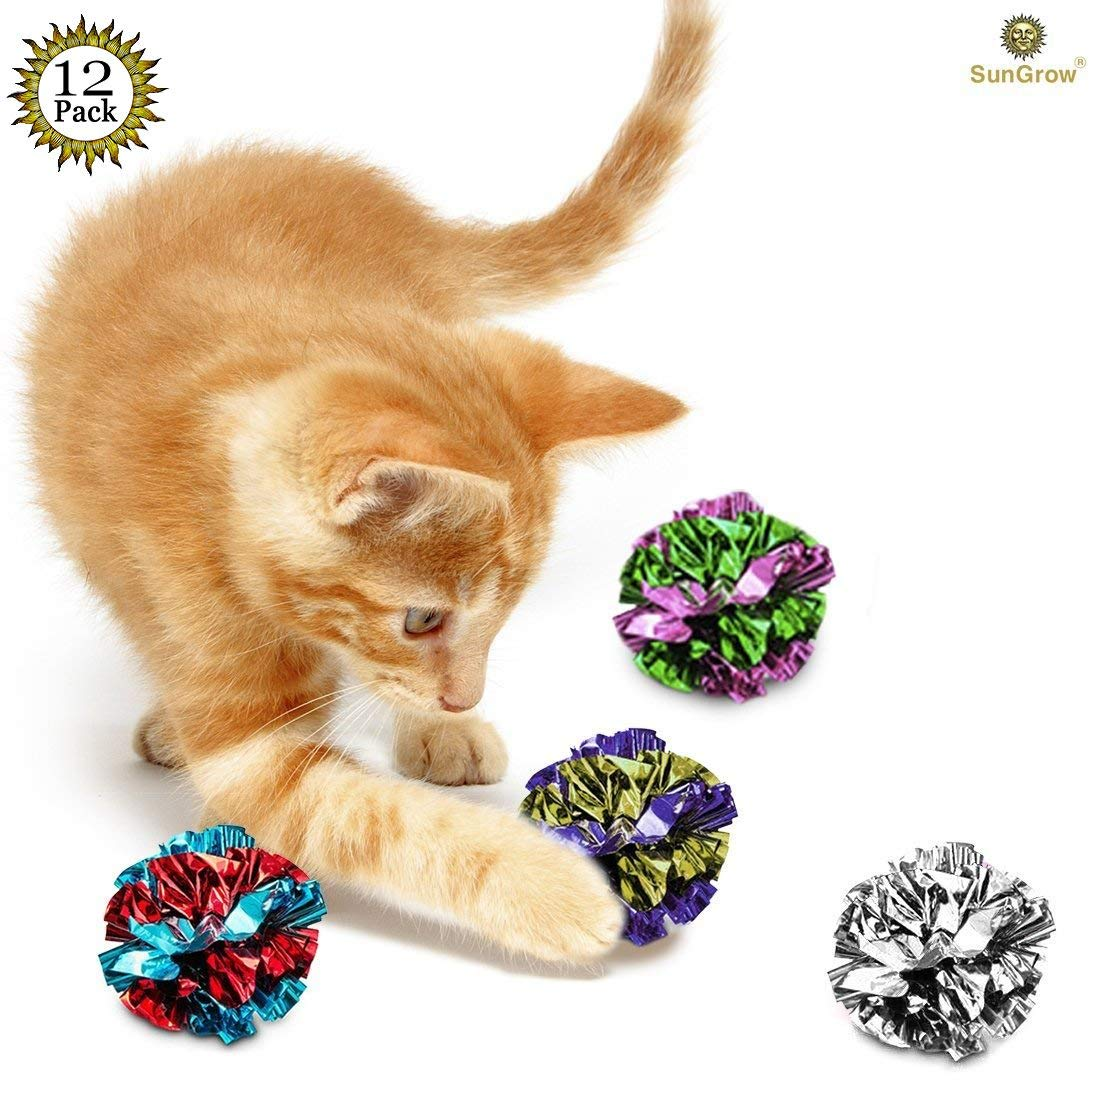 12 Mylar Crinkle Balls for Cats - Soft, Lightweight & Fun Toy for Both Kittens & Adult Cats - Shiny & Stress Buster Toy - Interesting Crinkly Sounds - Hours of Entertainment - Safe for Your Kitty MARIMO PET STORE